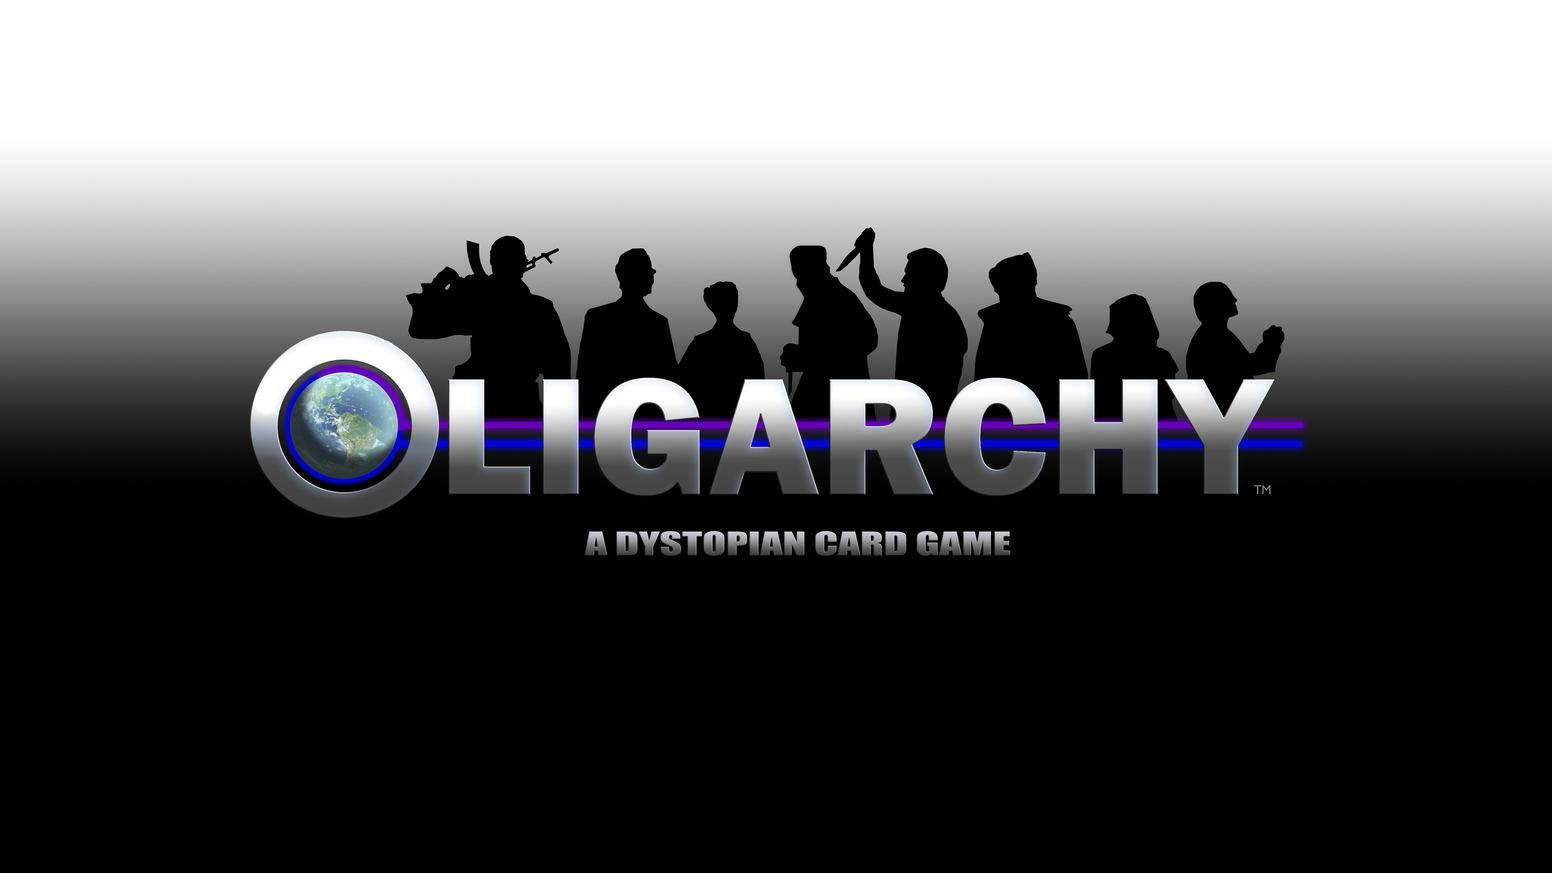 oligarchy a dystopian card game by gary wareham overwhelming